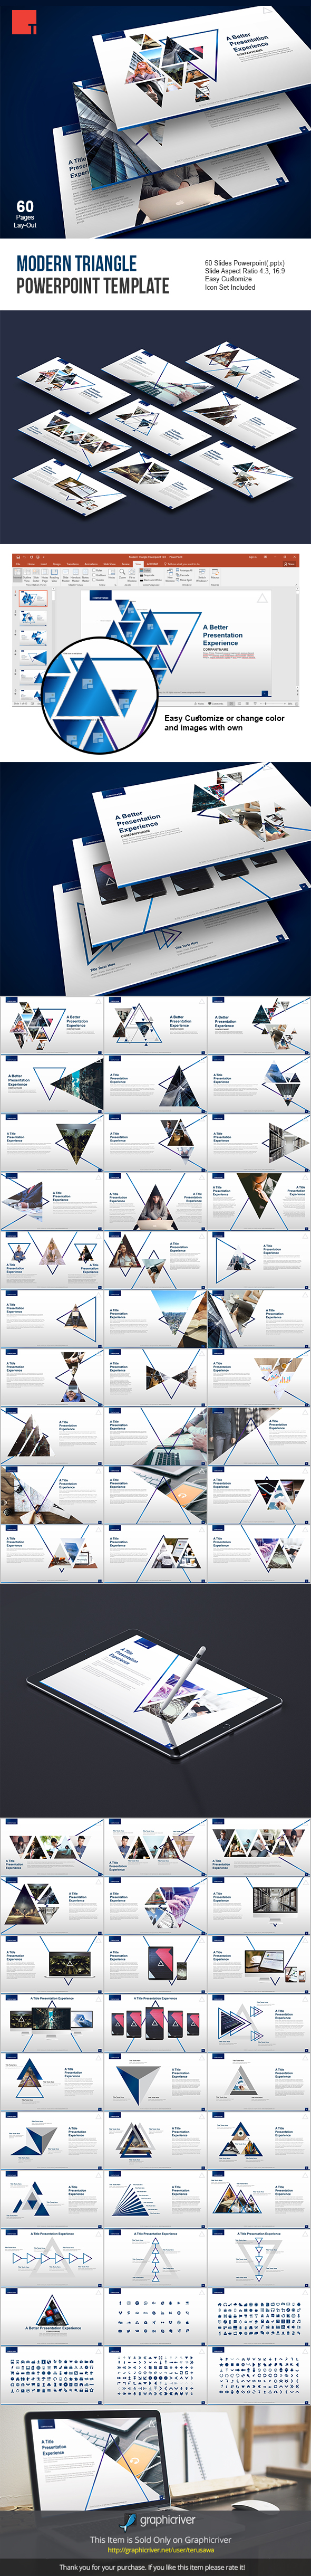 Modern Triangle Powerpoint Template by terusawa | GraphicRiver